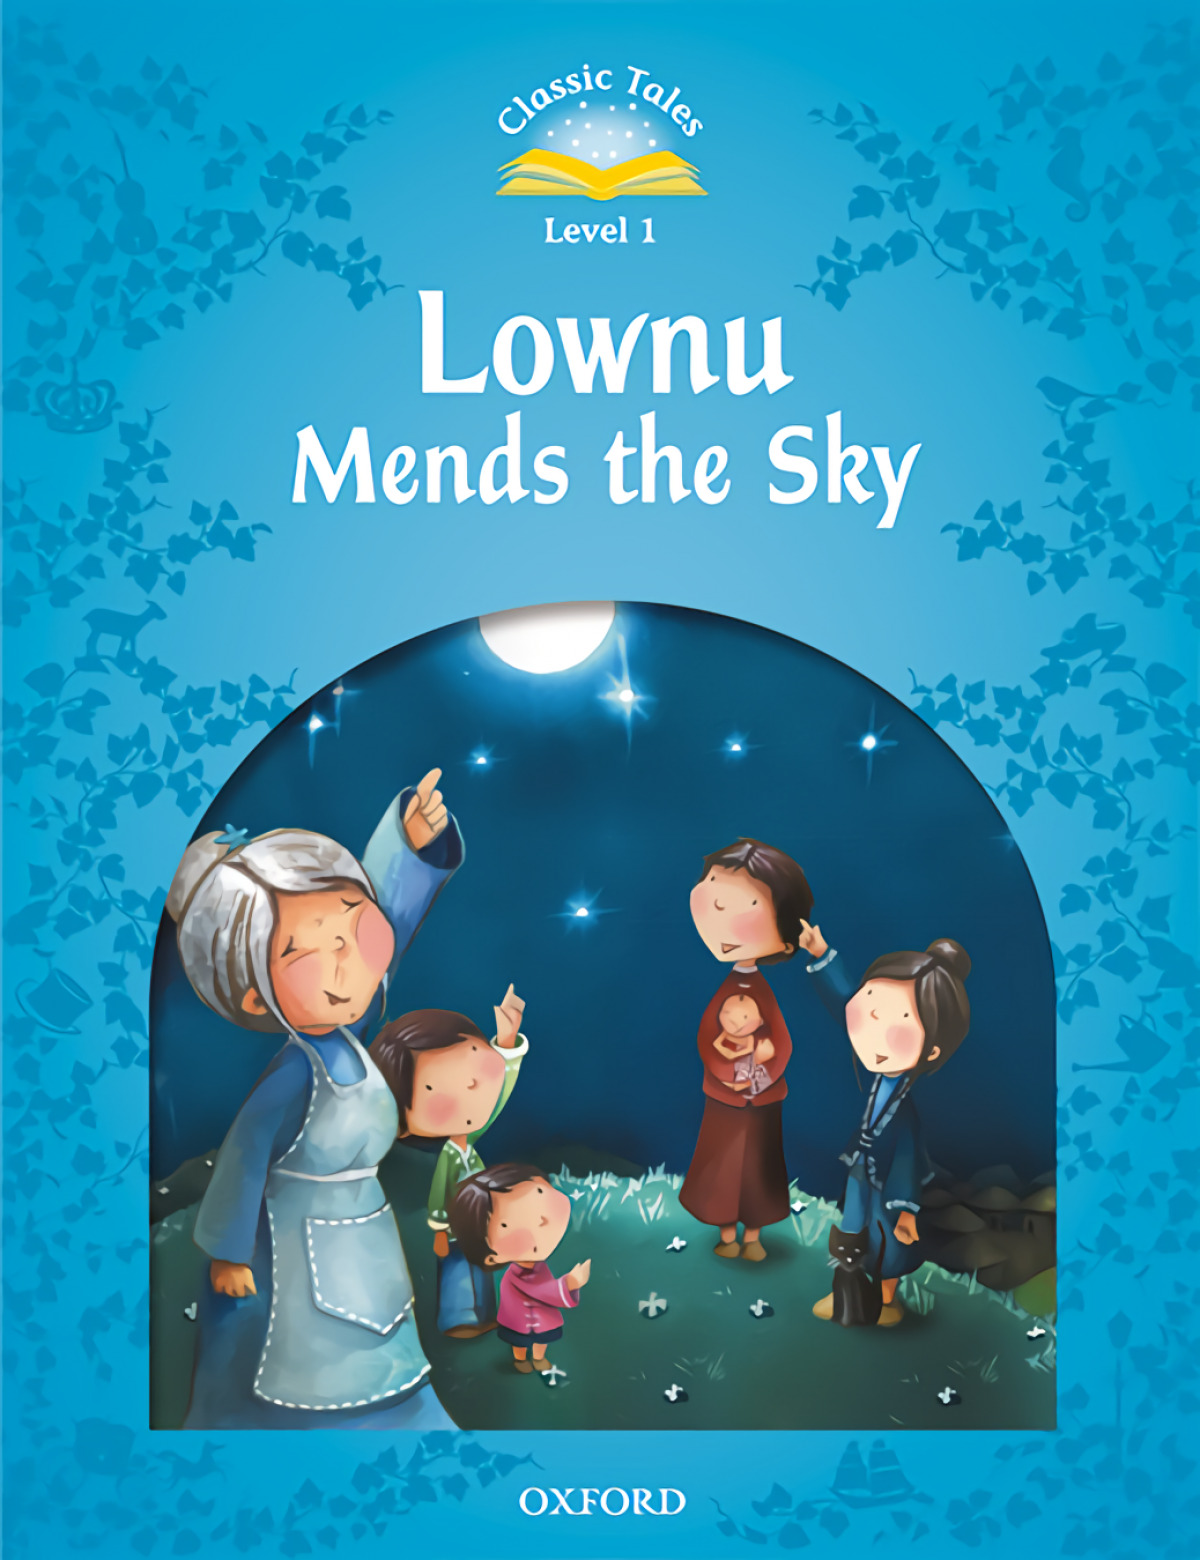 Lownu mends the sky/1.classic tales